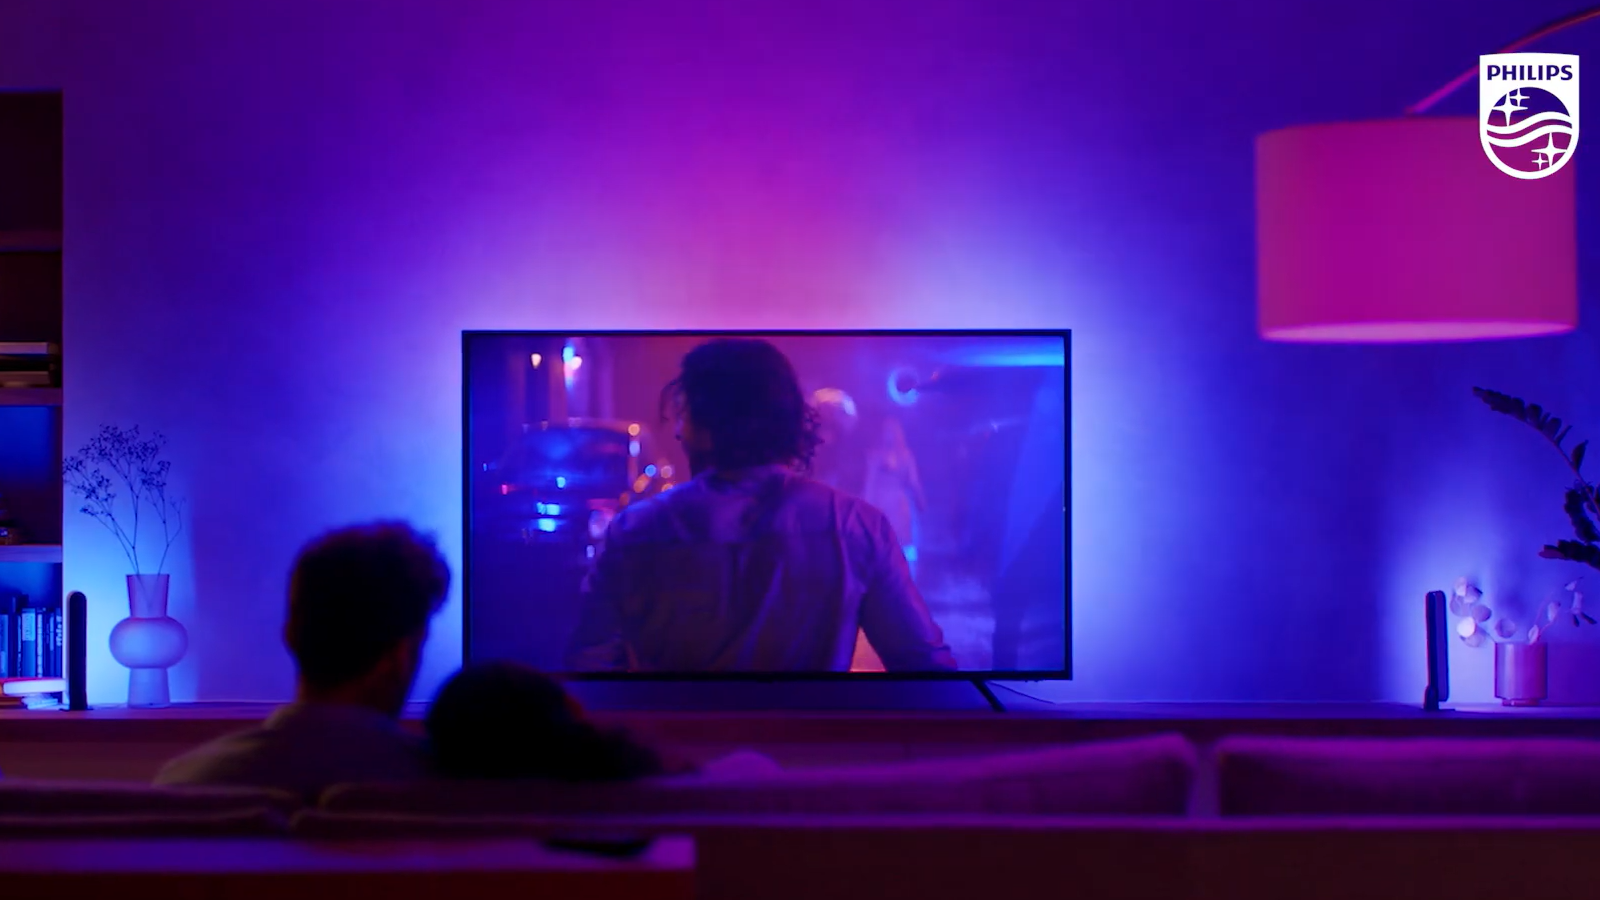 Philips Hue Play Gradient Lightstrip reflecting colors on wall behind TV, with a couple sitting on couch in foreground watching it